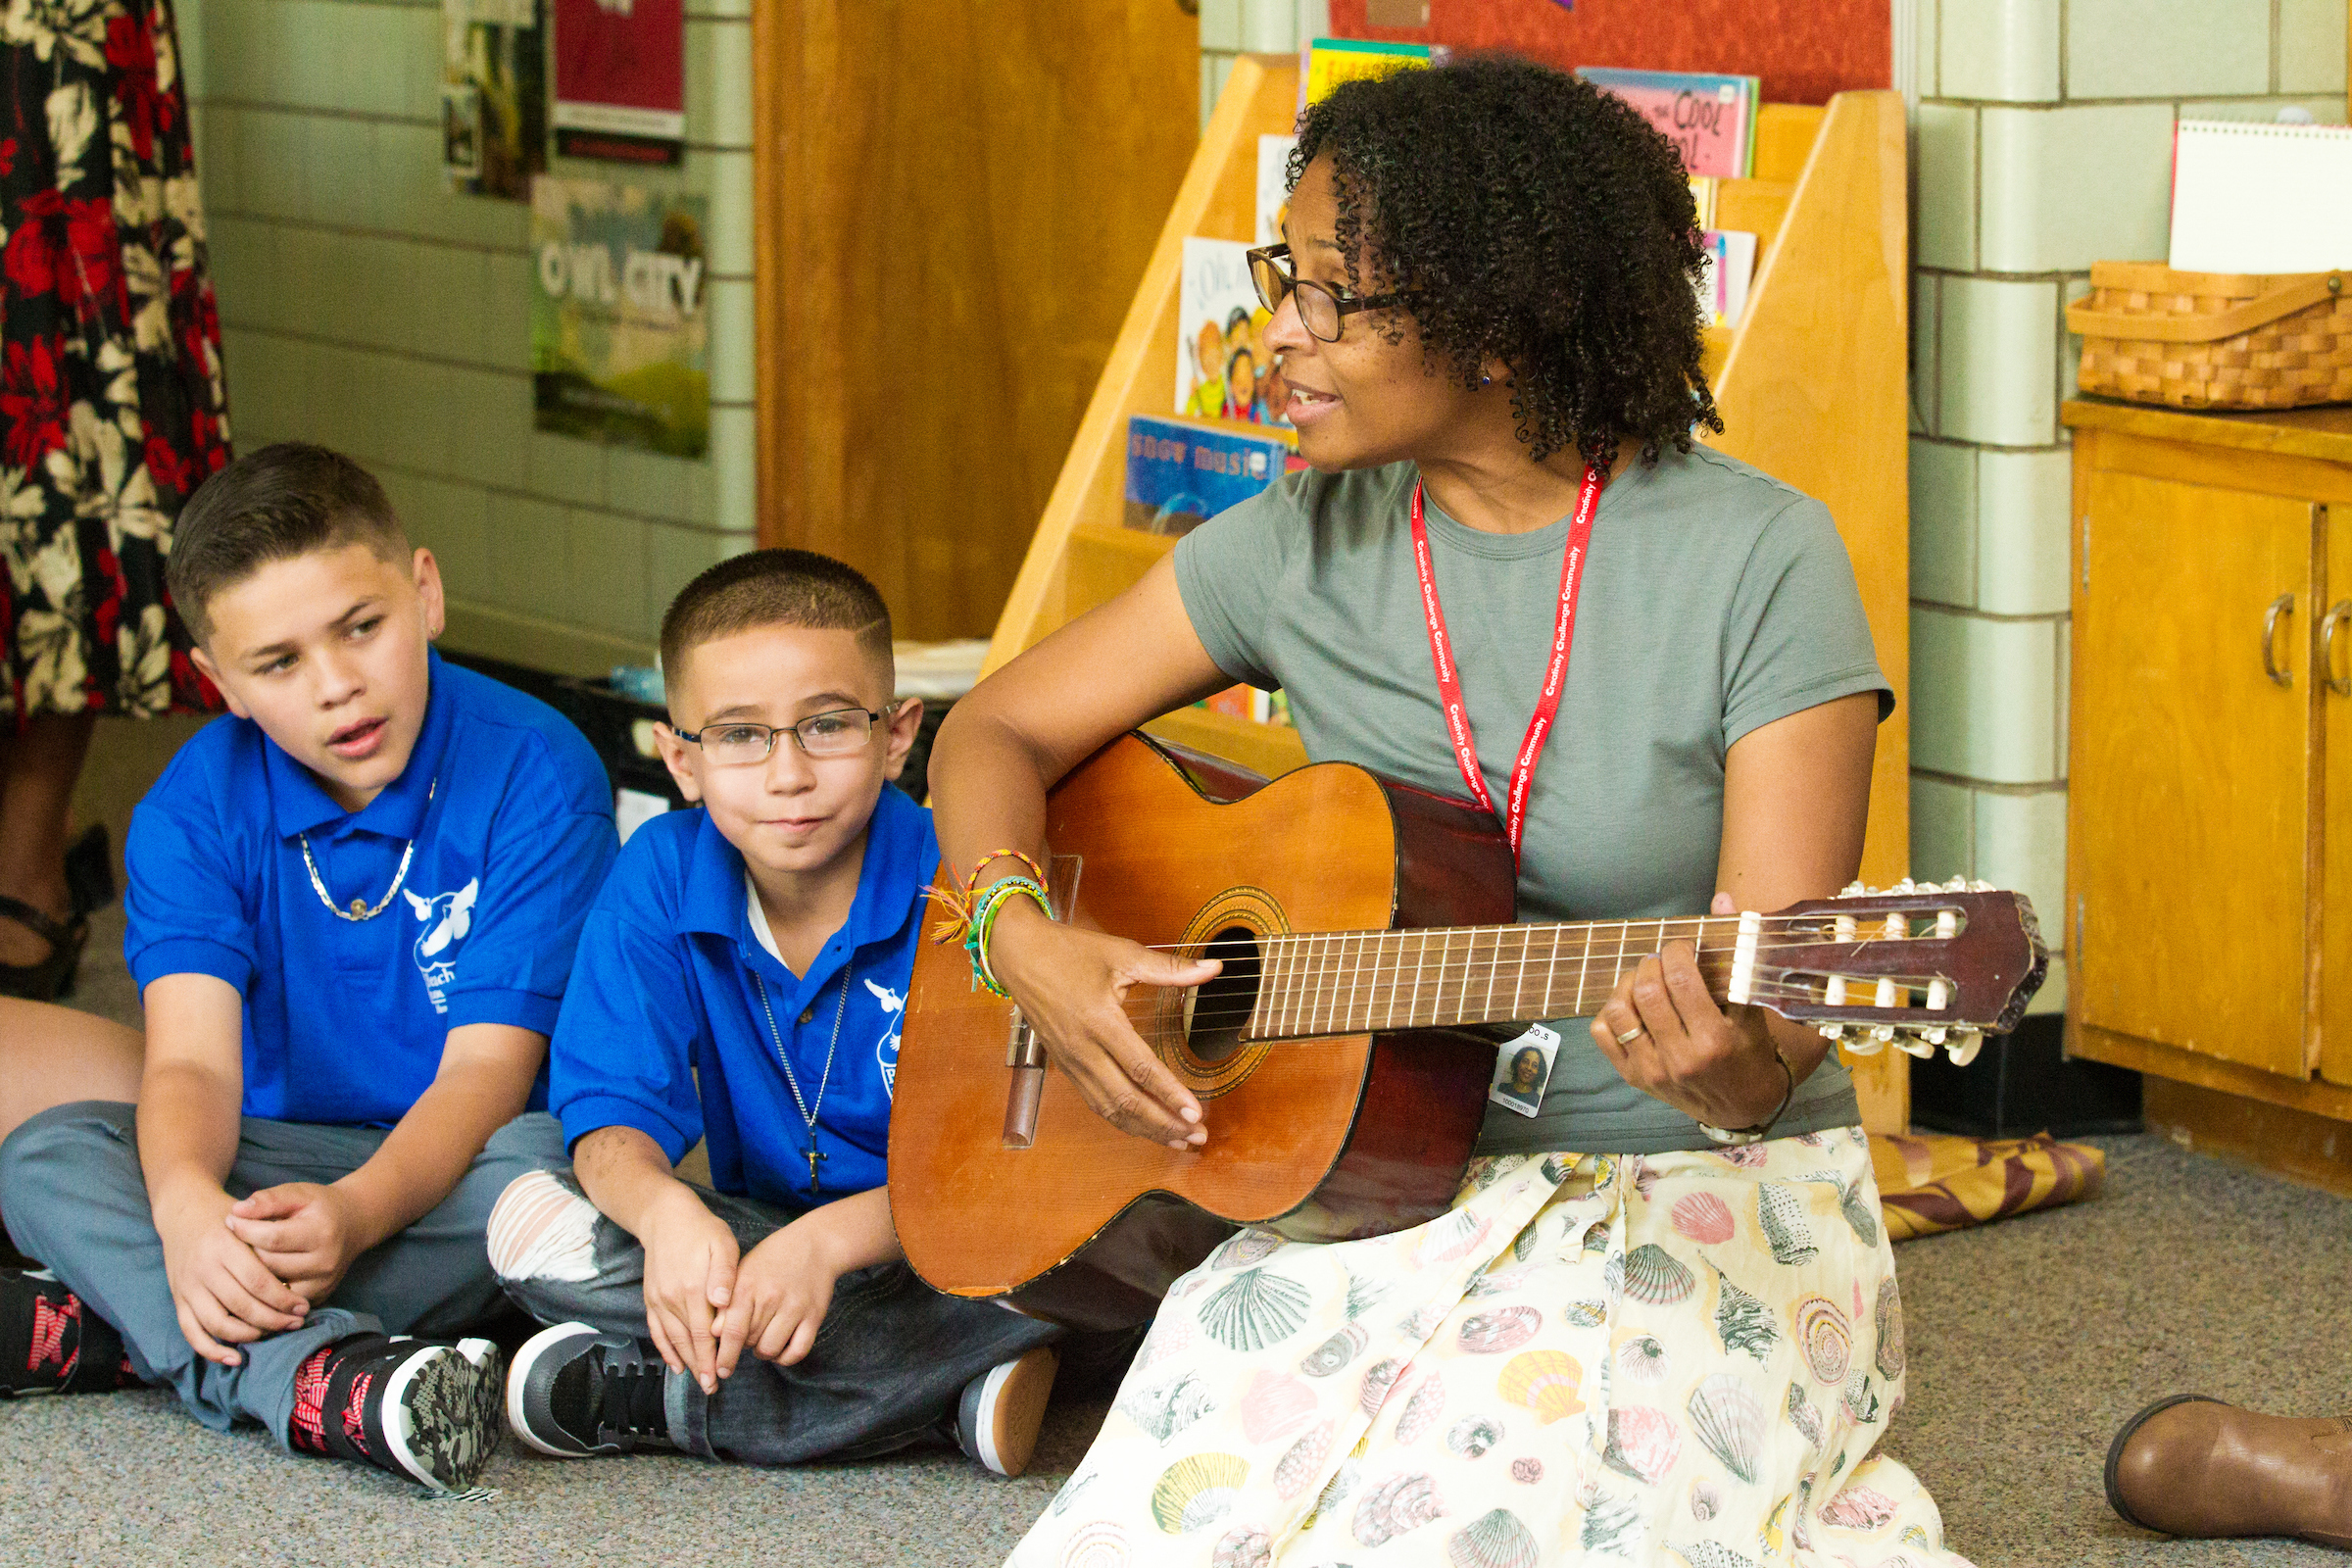 Beach Court music teacher plays guitar for students